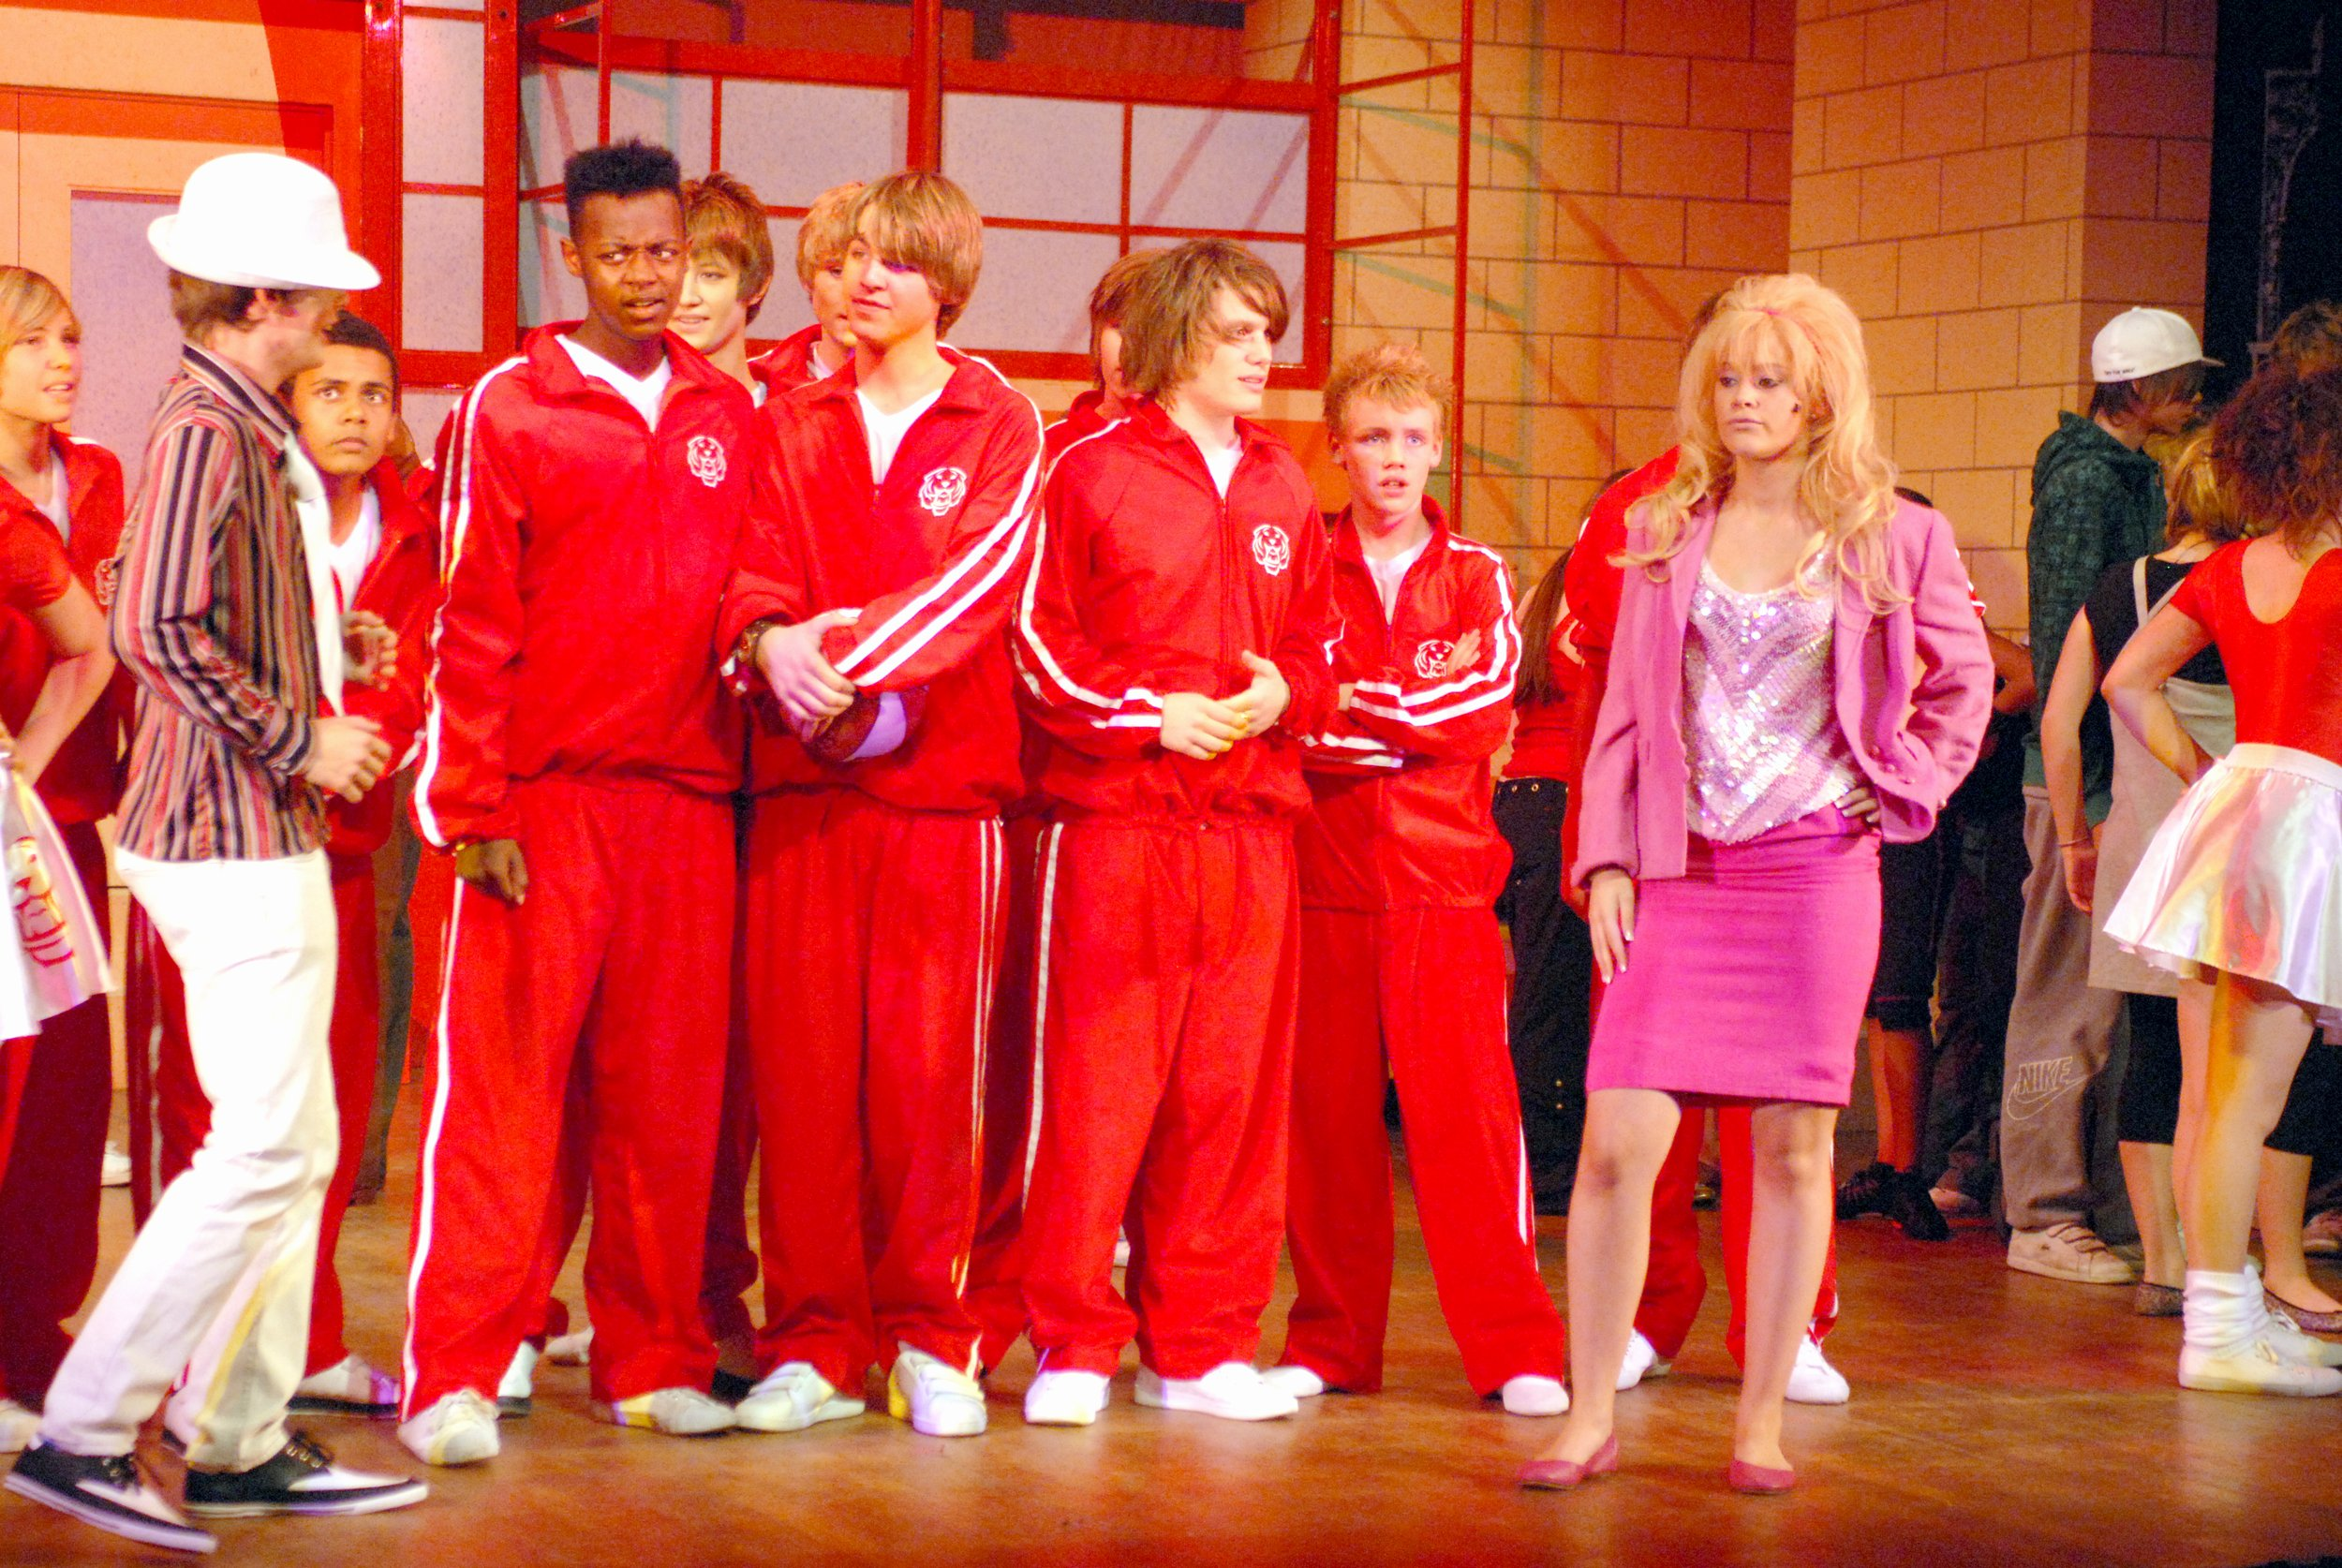 High School Musical - 2007